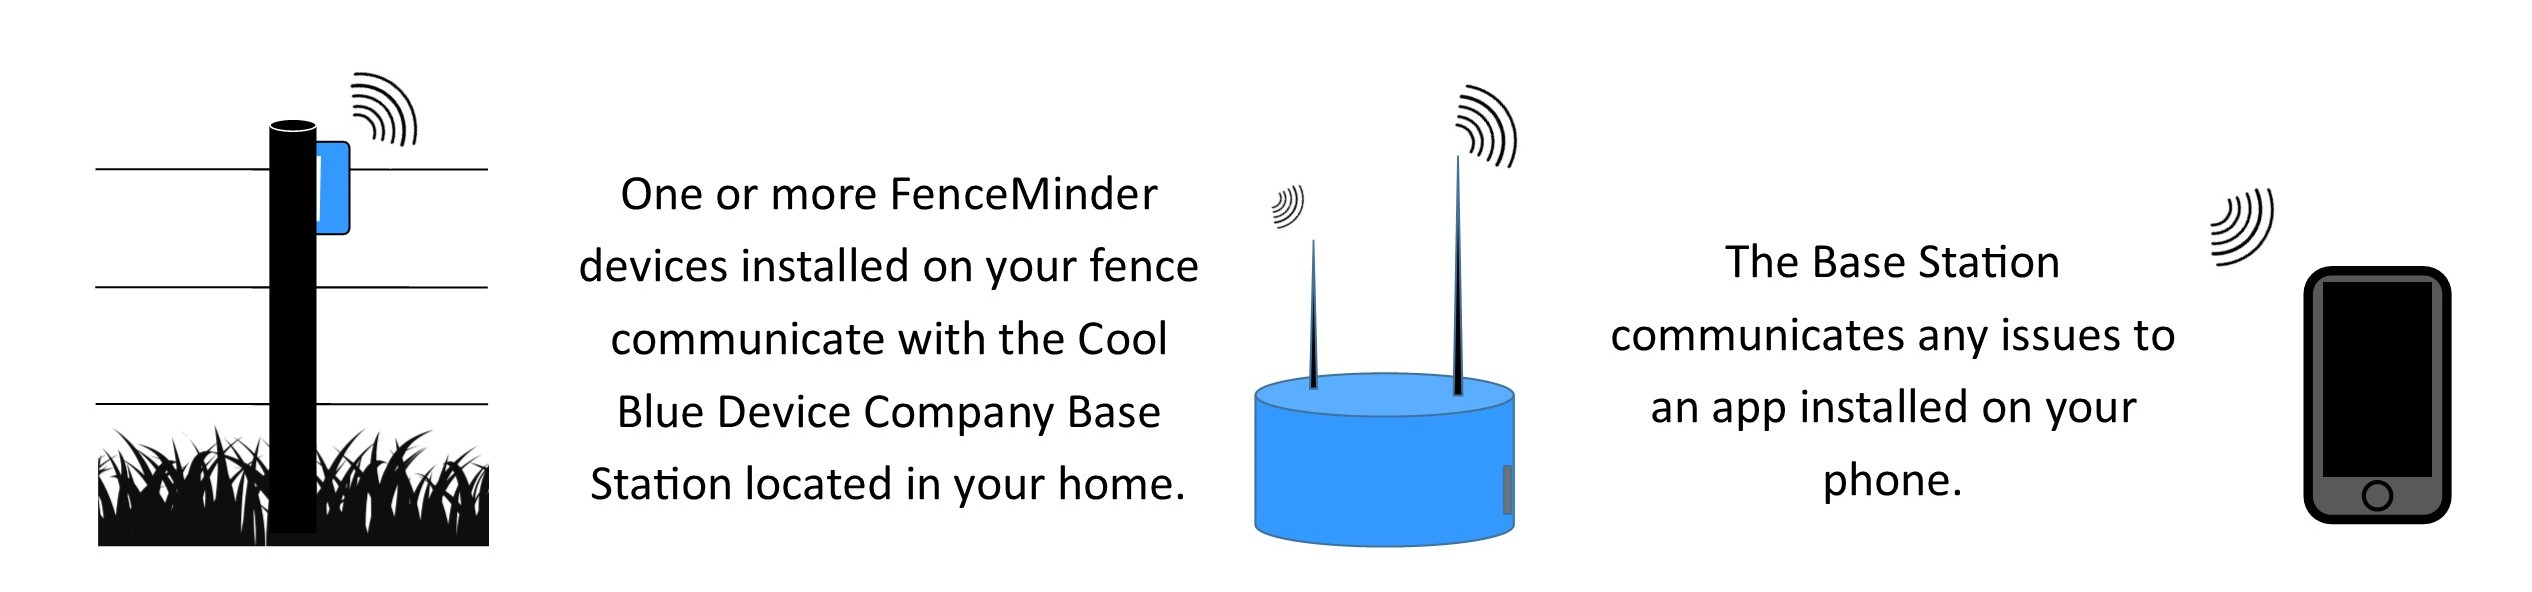 image describes how fenceminder works - one or more fenceminder devices installed on your fence communicate with the cool blue device company base station located in your home.  The base station communicates any issues to an app installed on your phone.